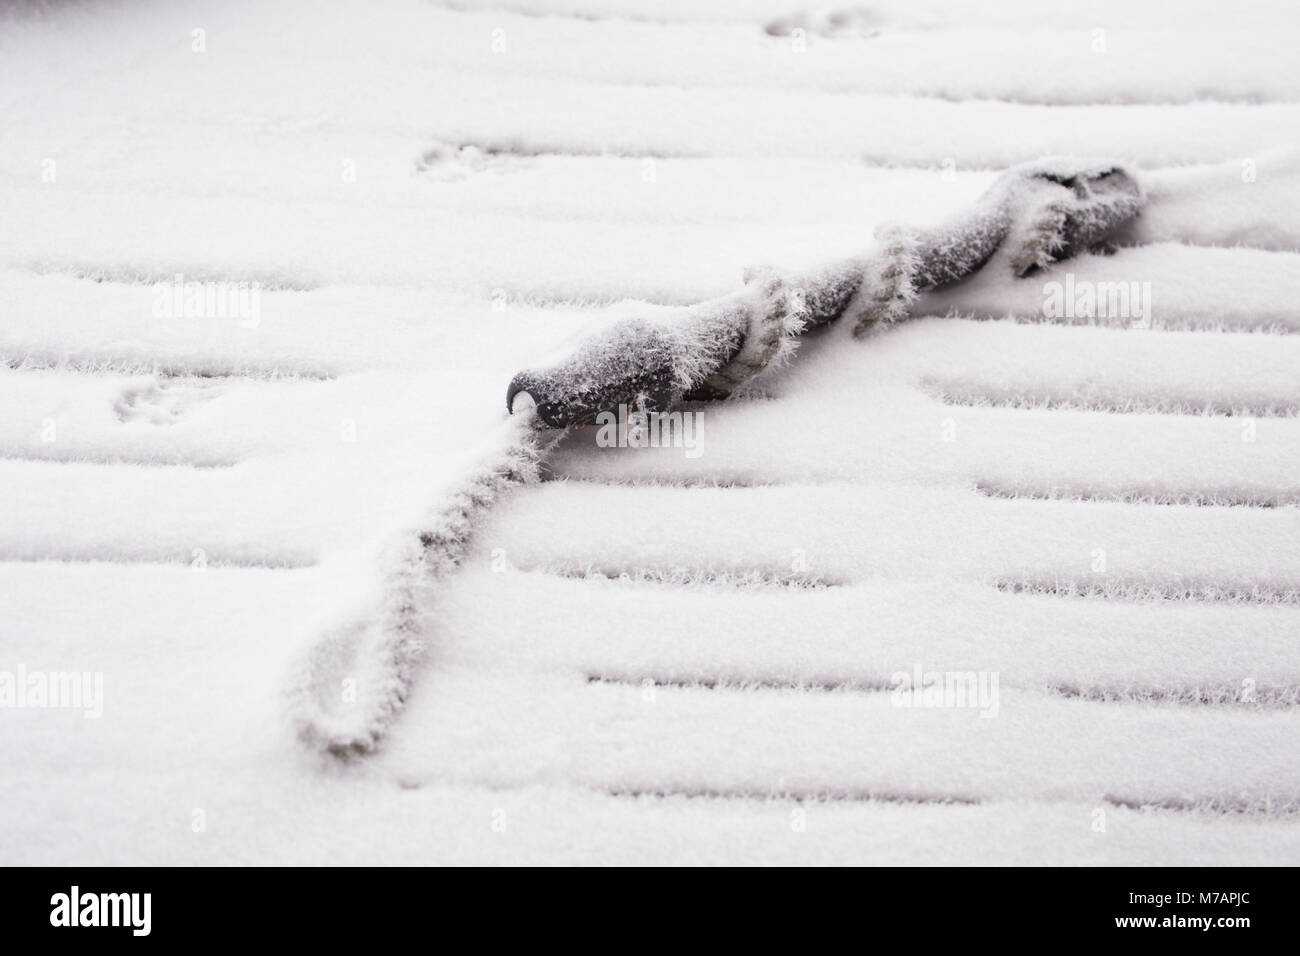 Frost covered rope stock photos frost covered rope stock images frost covered boat fastening rope on a wooden pier stock image buycottarizona Images